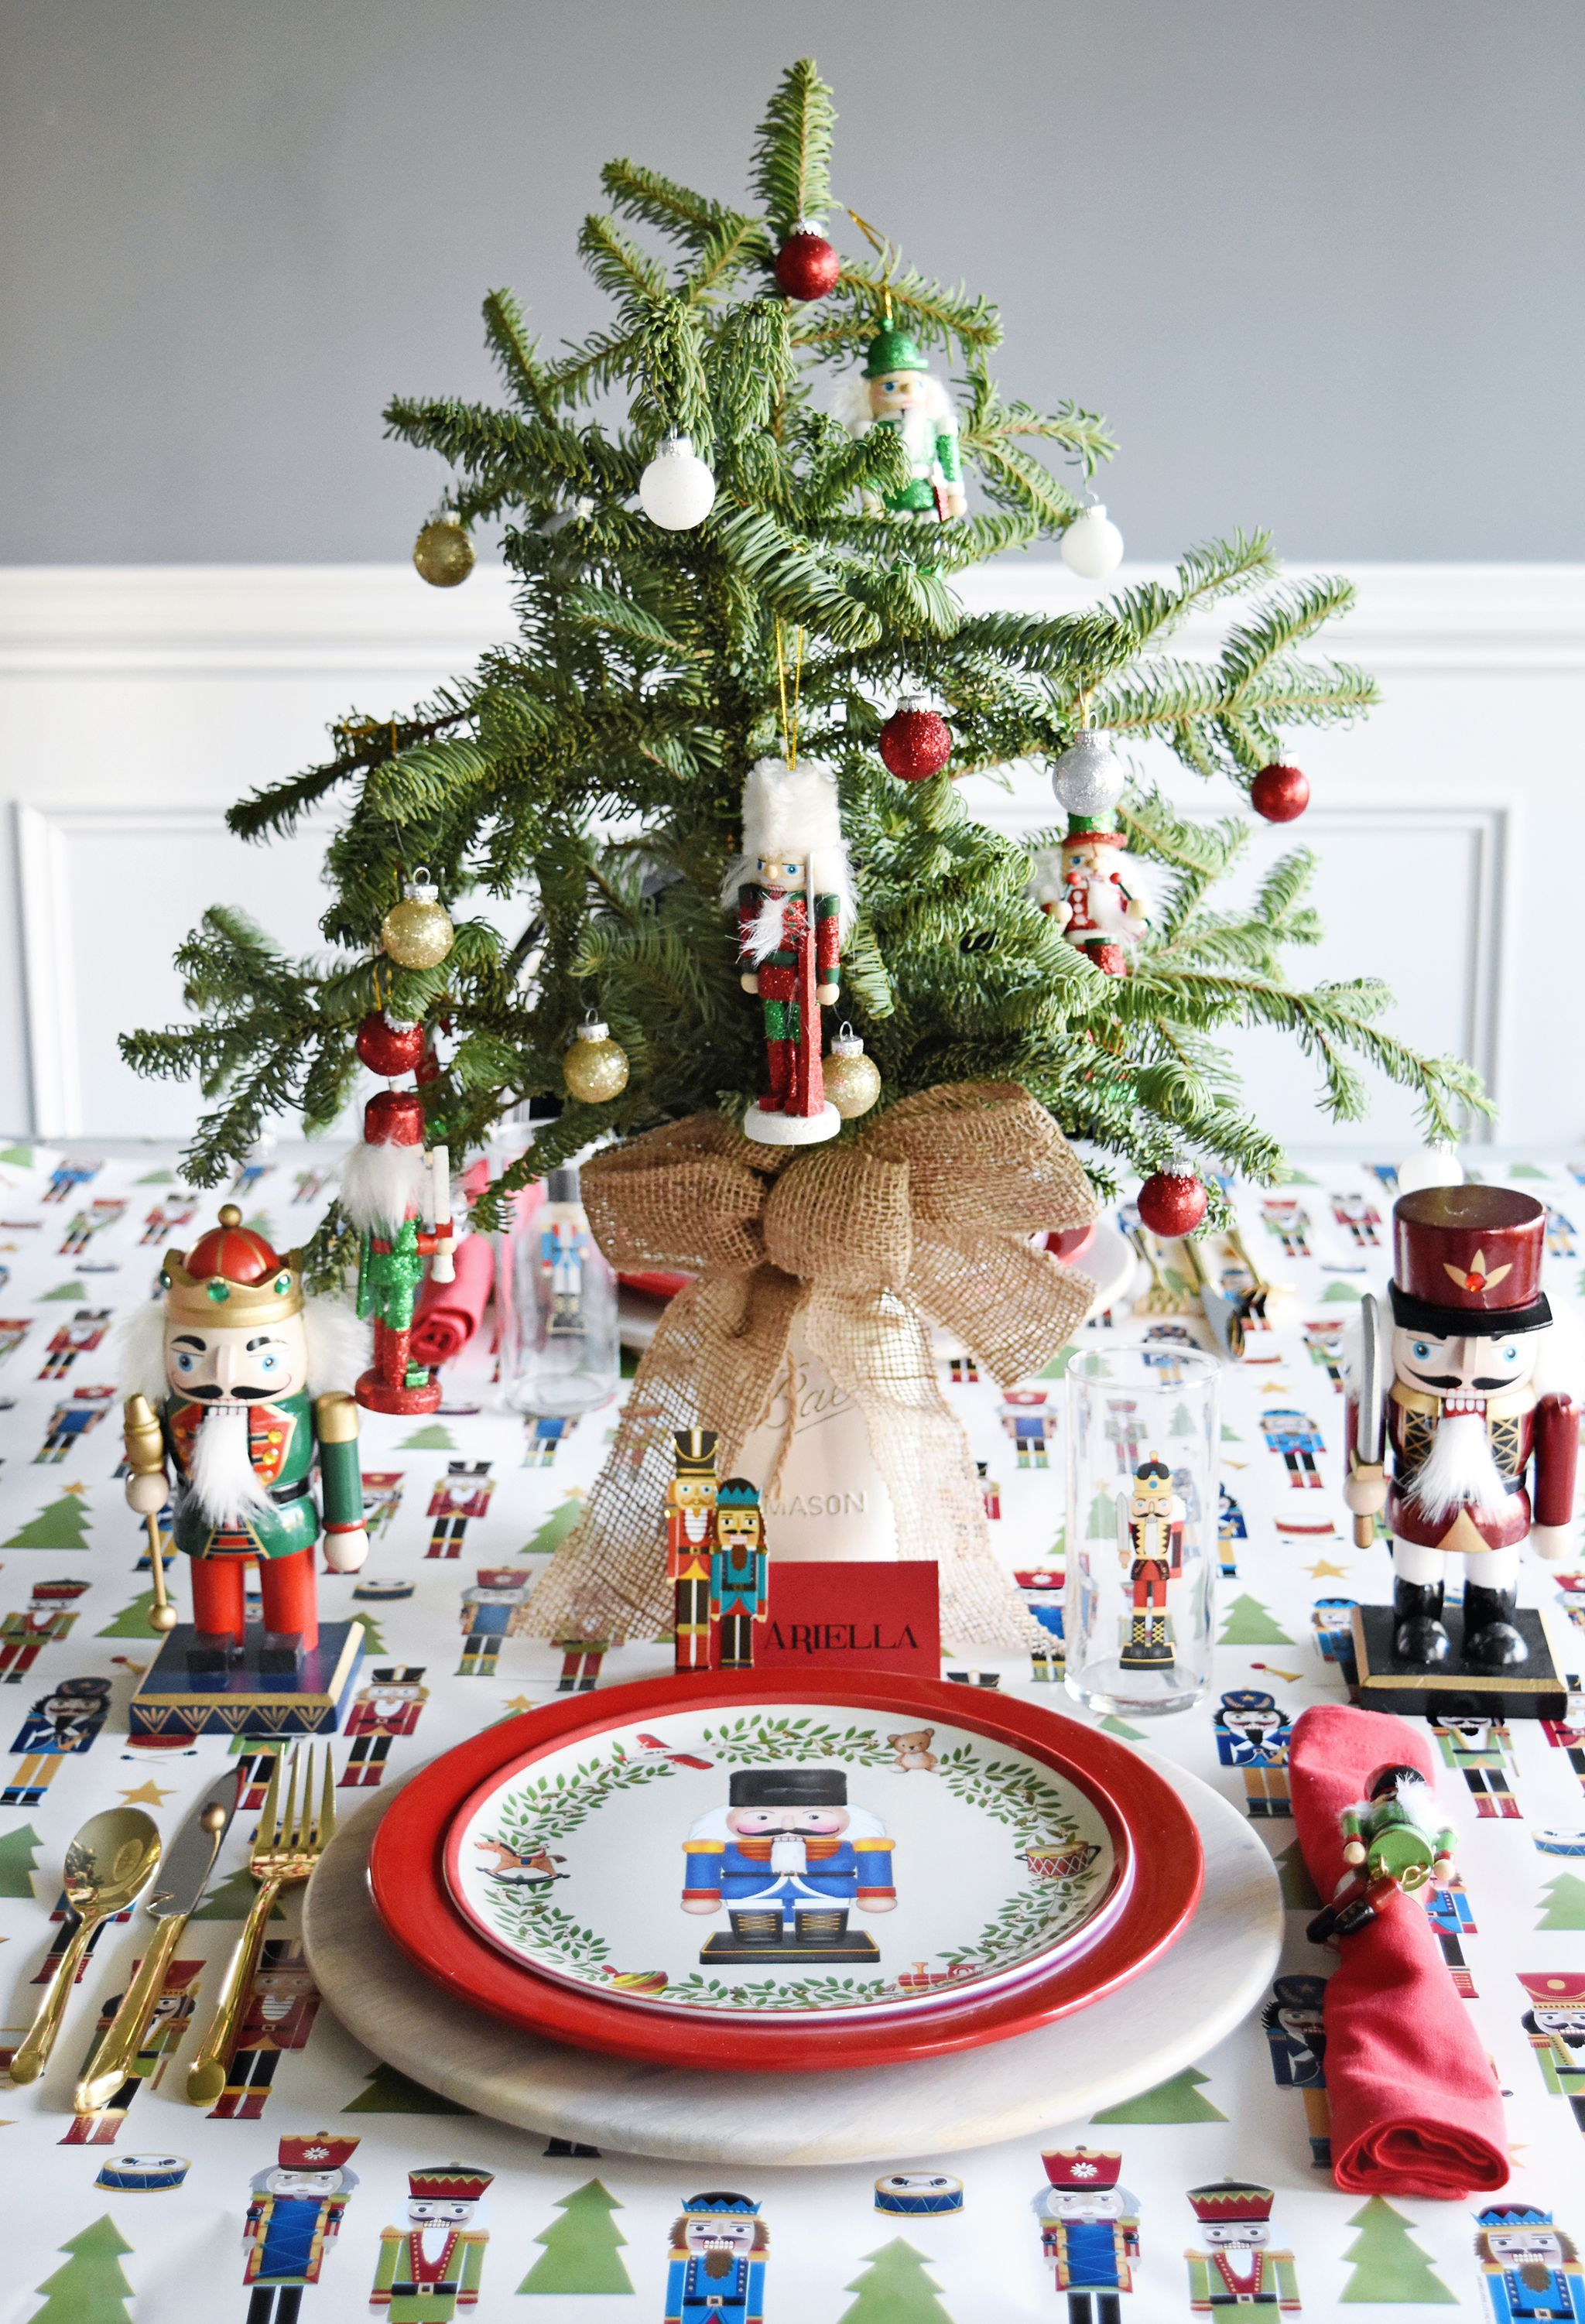 Host A Nutcracker Themed Party Project Nursery Nutcracker Christmas Party Nutcracker Christmas Tree Nutcracker Christmas Decorations